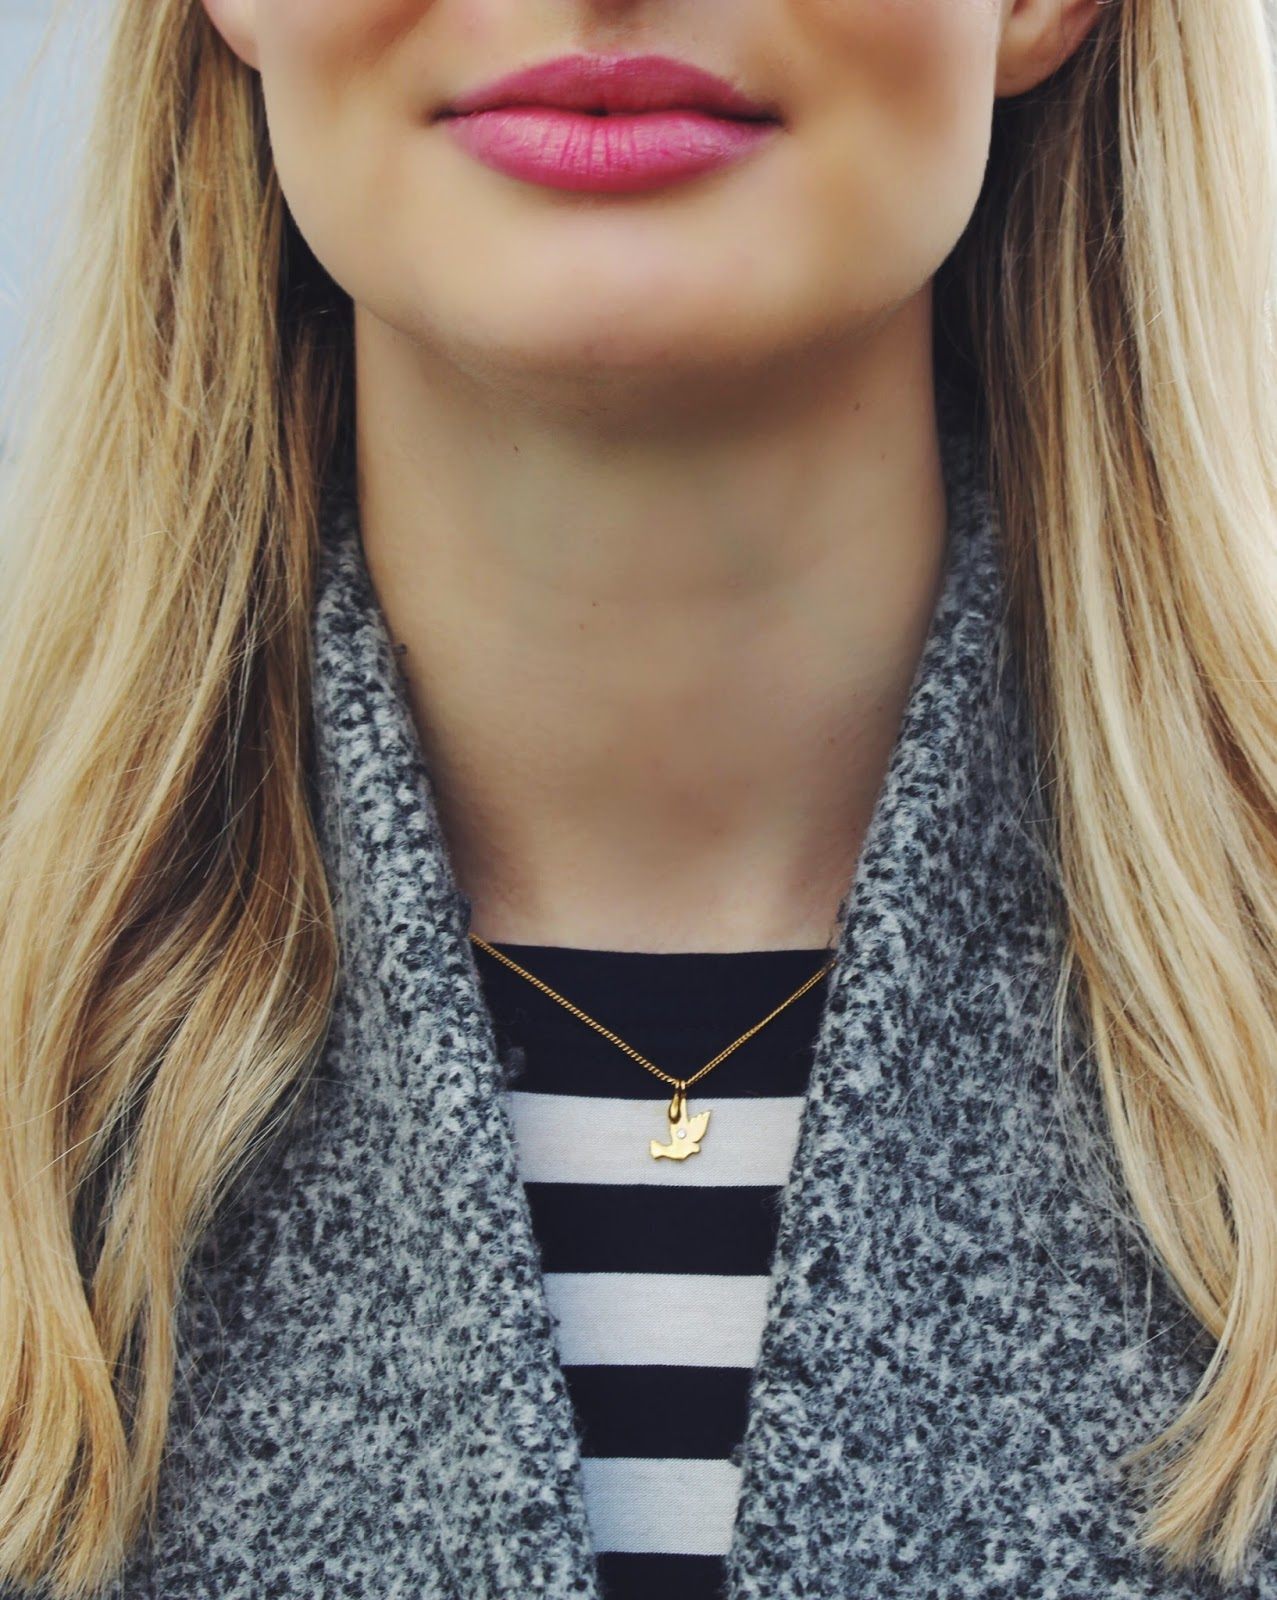 gold necklace, tiny necklace, dainty necklace, dove necklace, sara hartley necklace, pink lips, pink lipstick, burberry lipstick